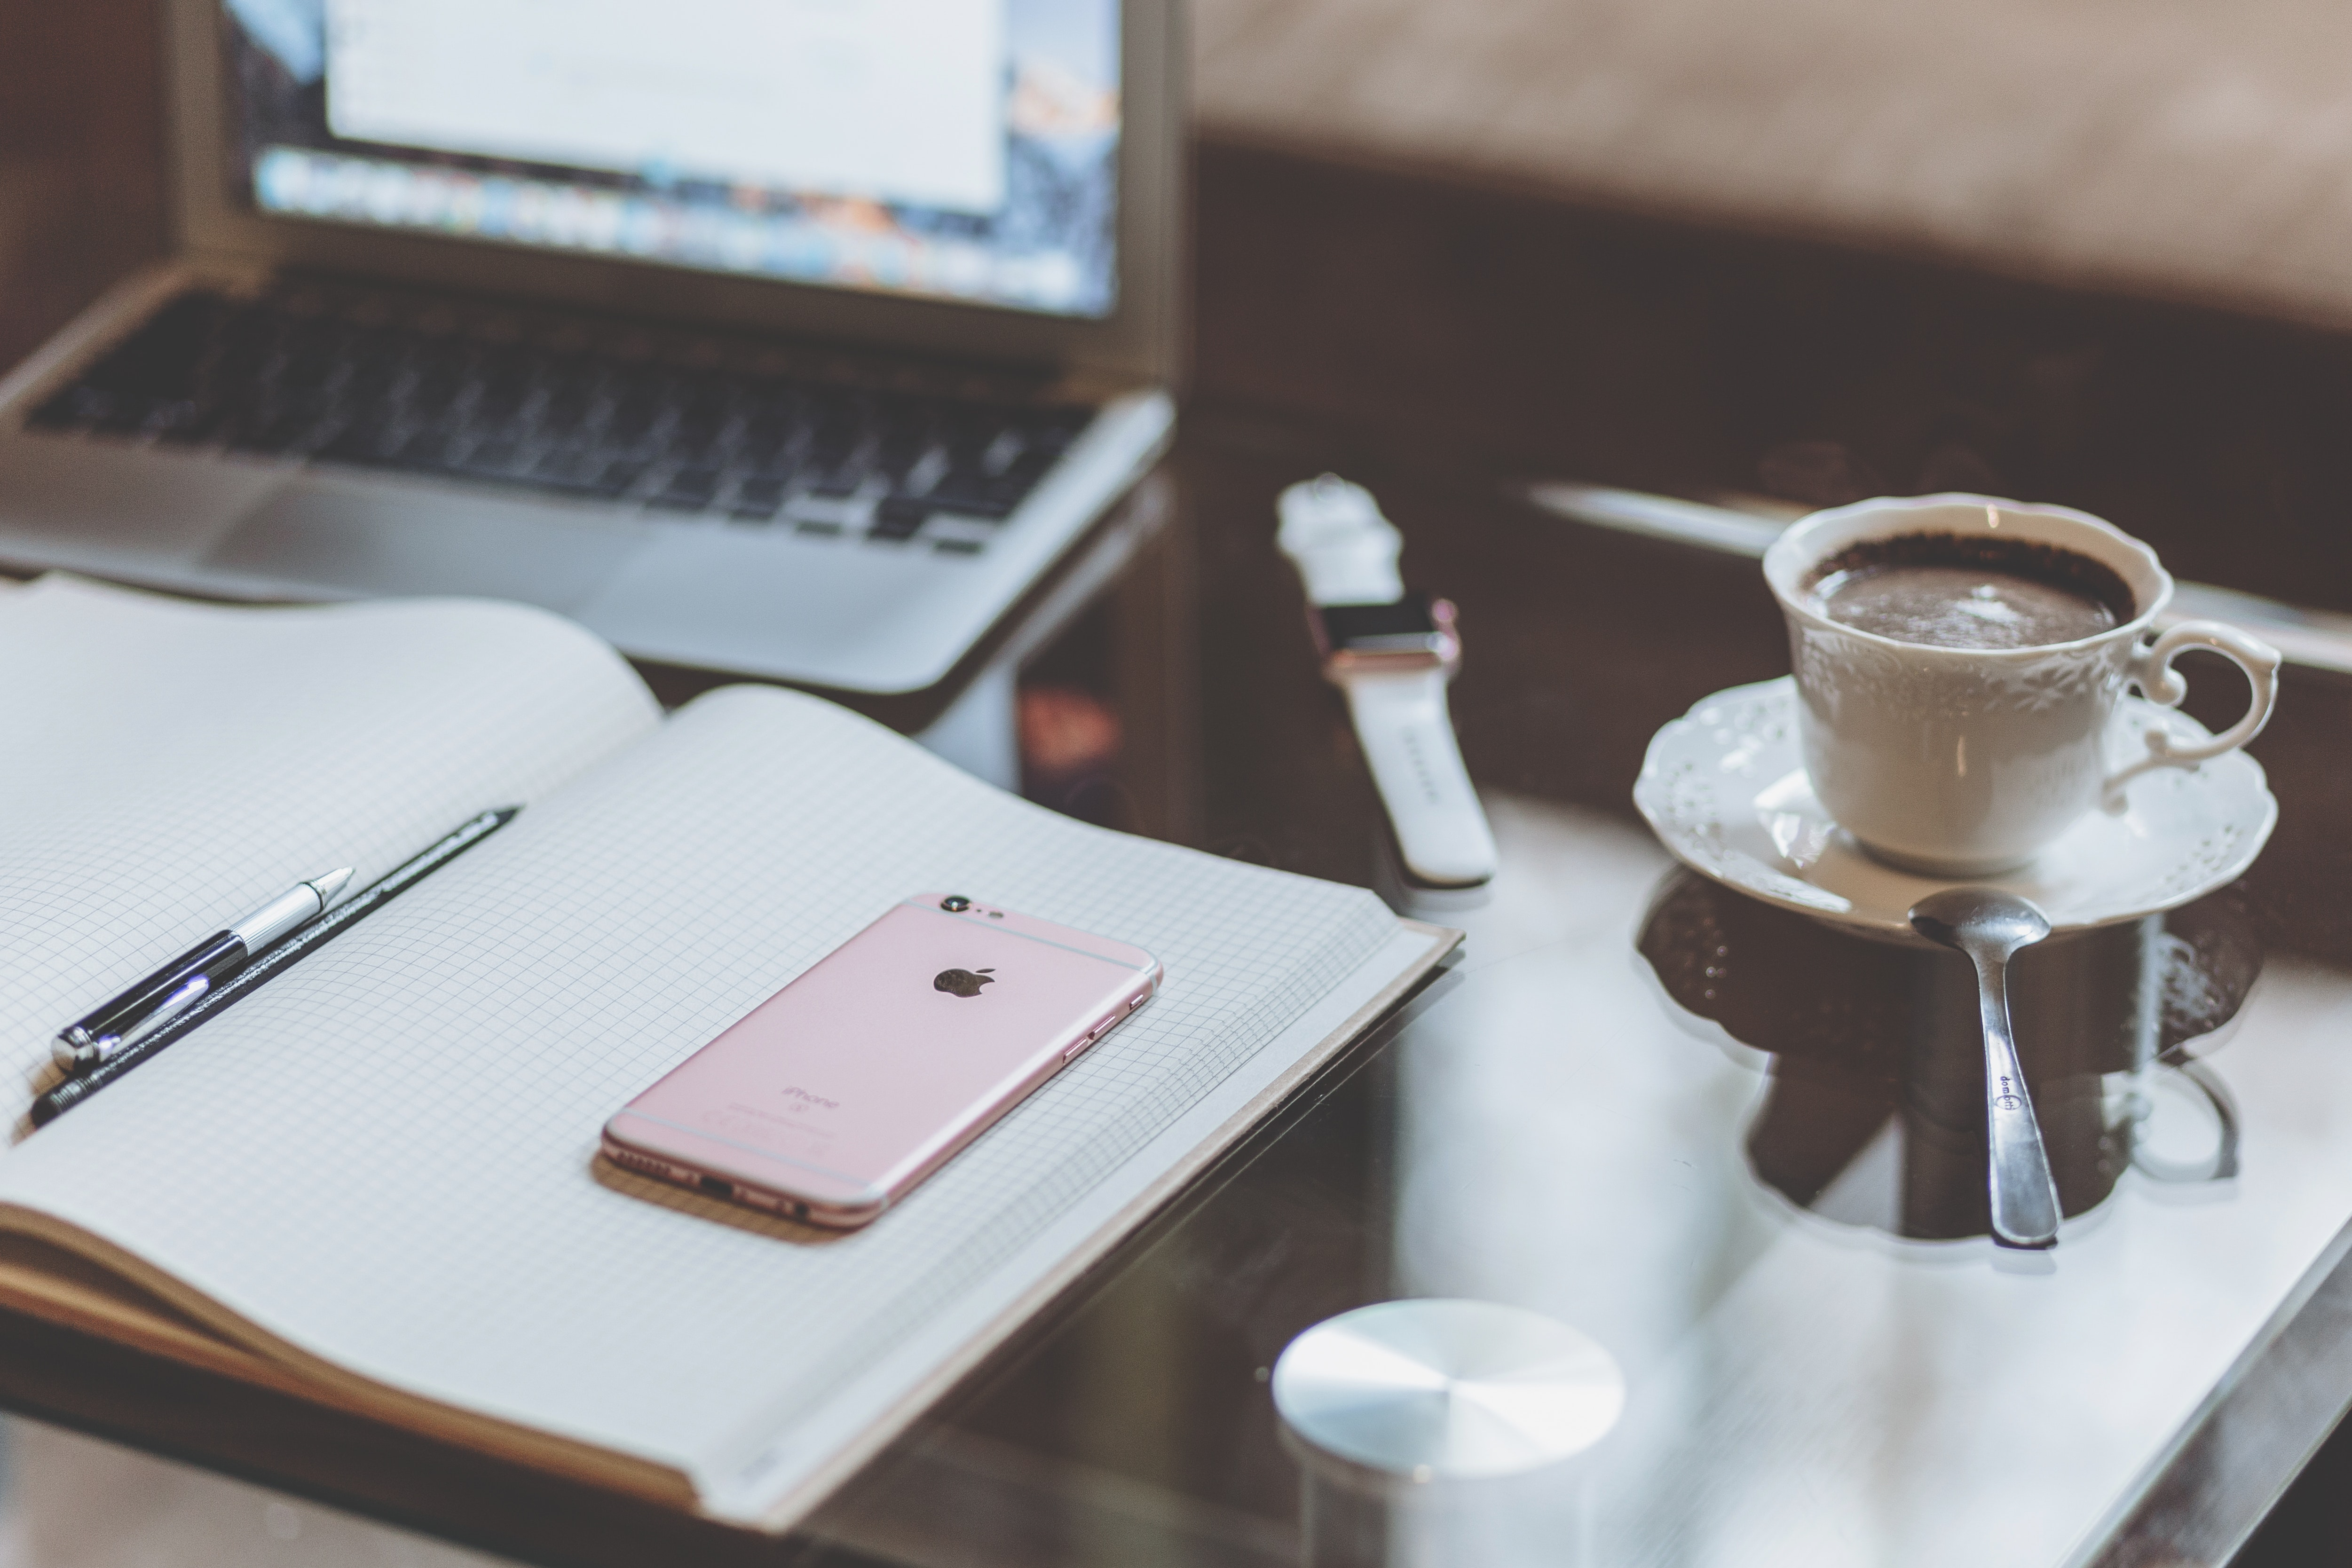 Rose gold iphone 6s on white book near coffee photo